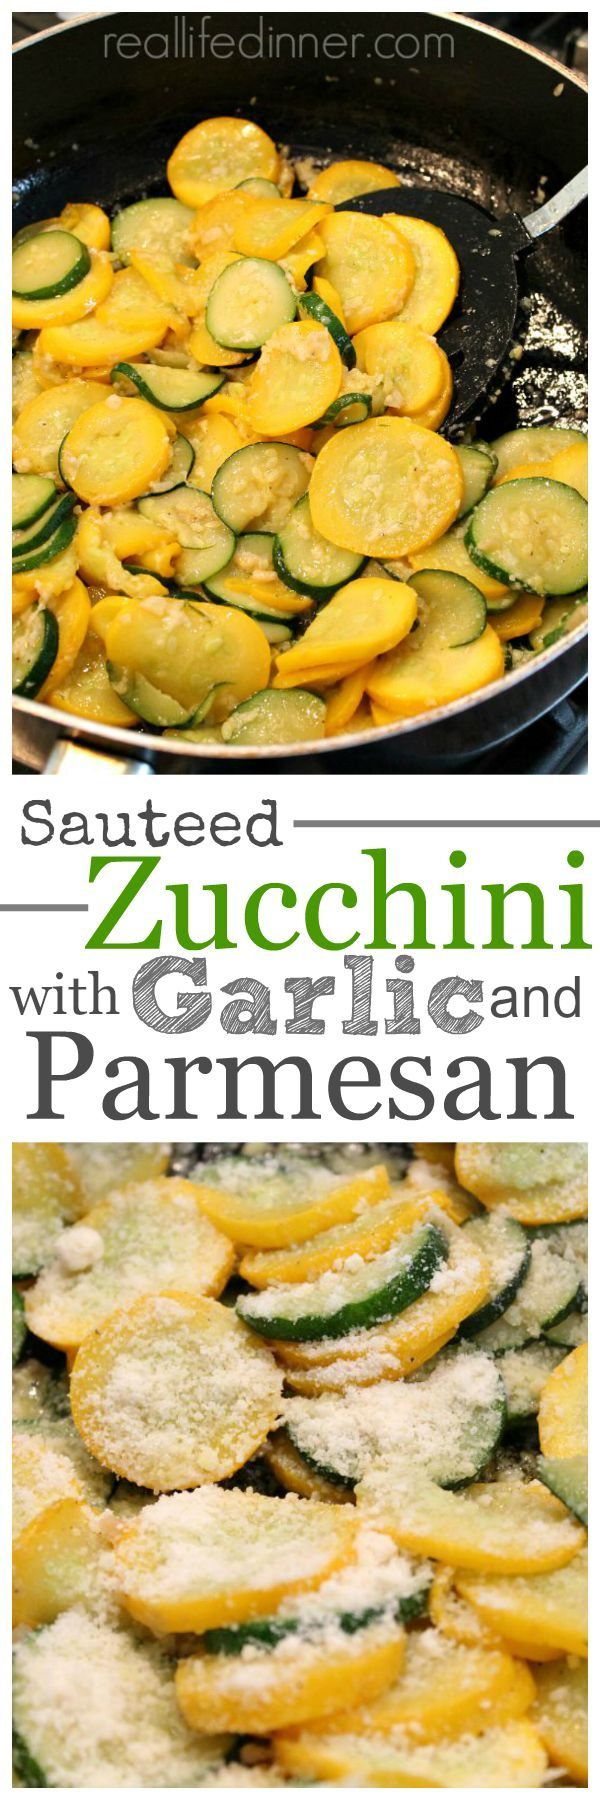 Get more flavor bang out of your side dish with hardly any extra effort. This Sauteed Zucchini and Yellow squash with Garlic and Parmesan is the Bomb and so easy to make.